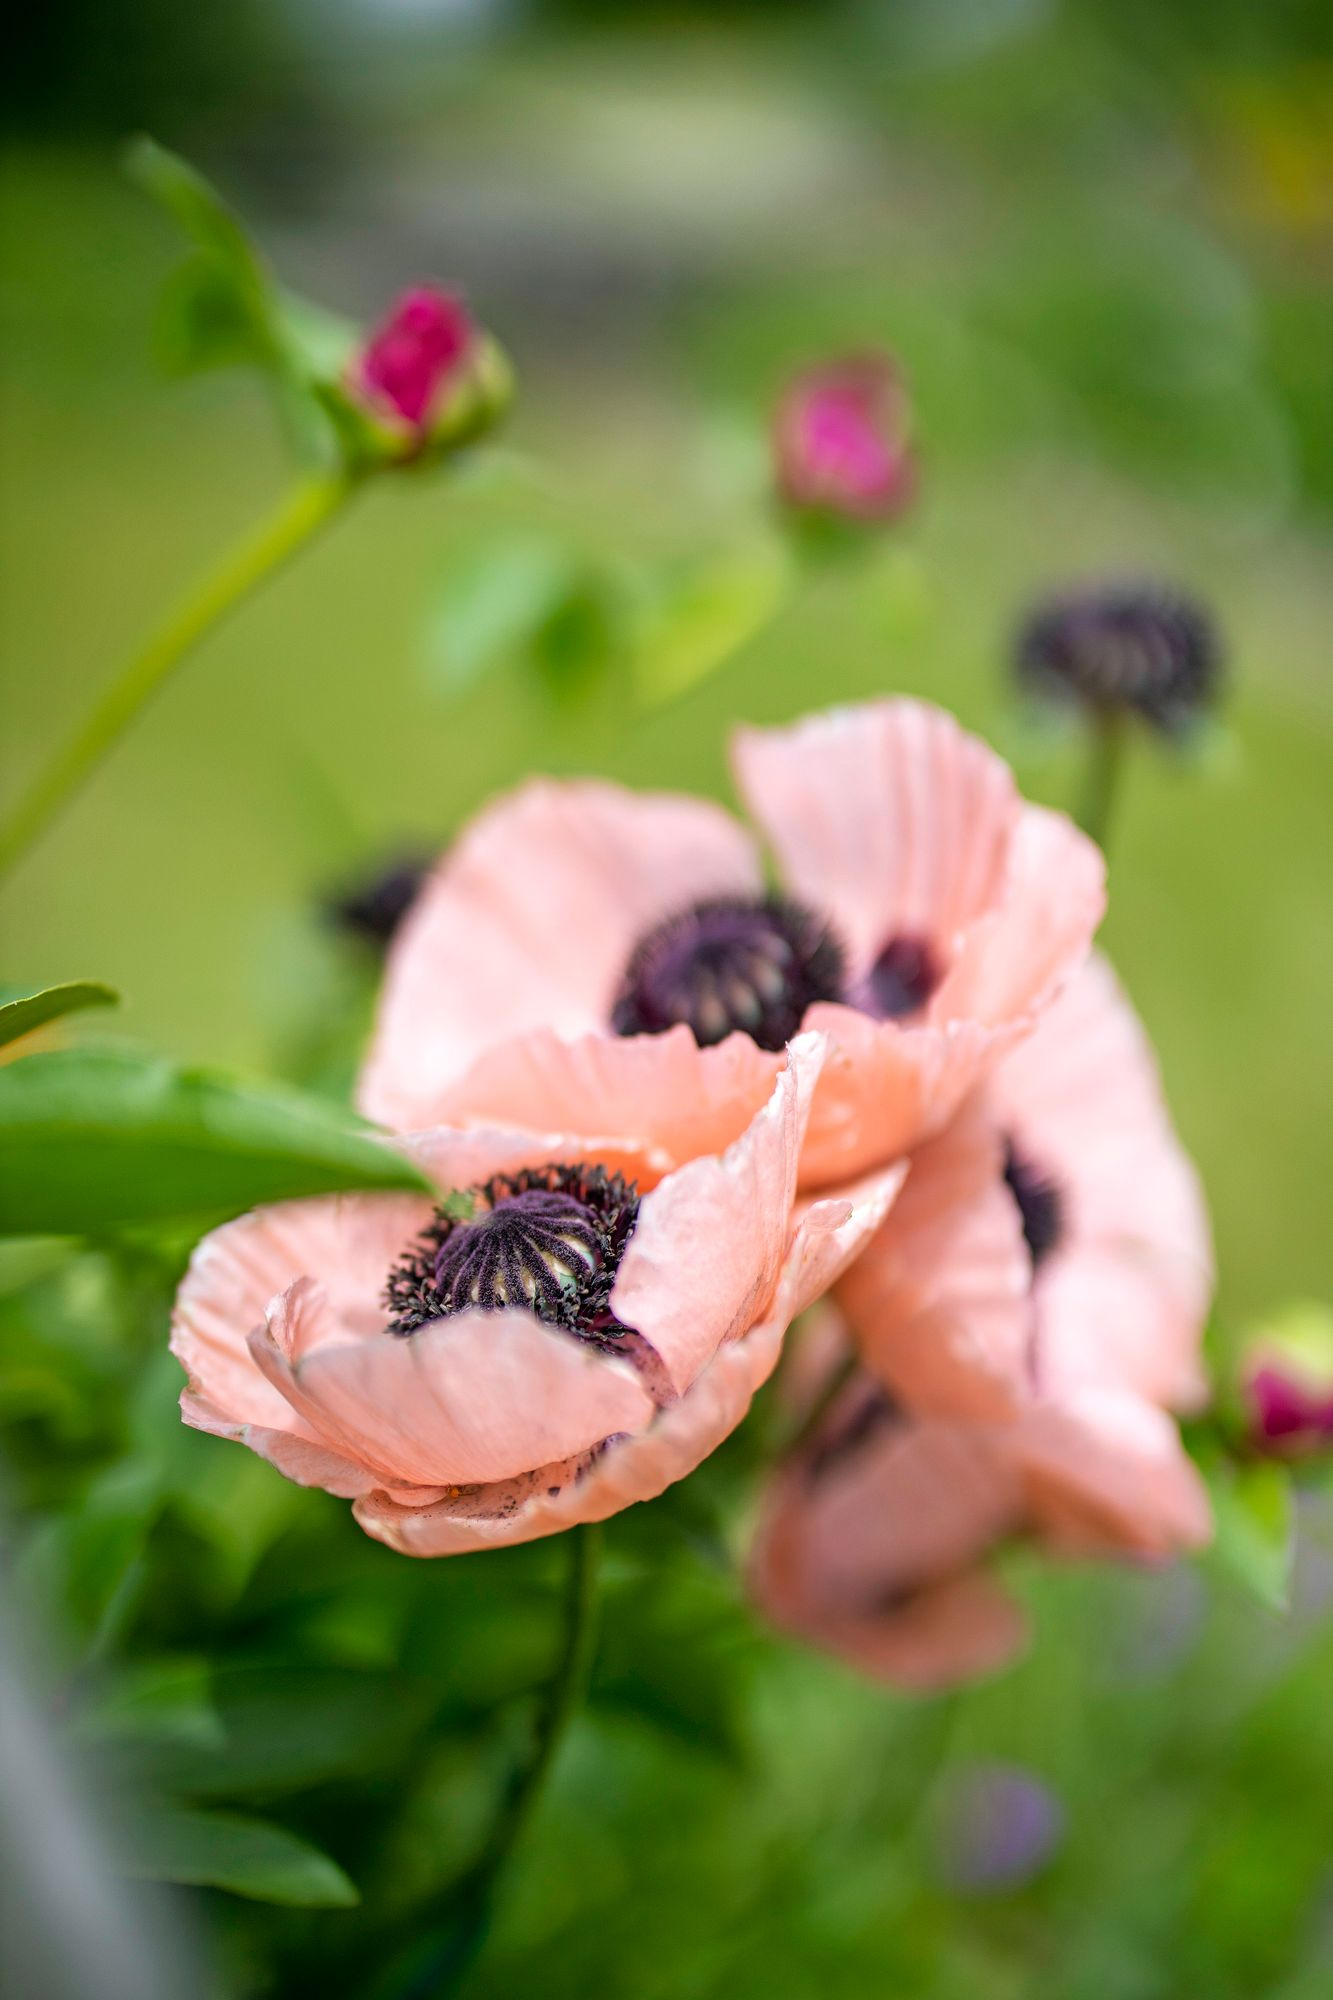 Gentle shades are cottage garden style.  The flowers of the Oriental poppies are large and flat like Teacups.  Pictured is the eastern poppy Salmon Pink.